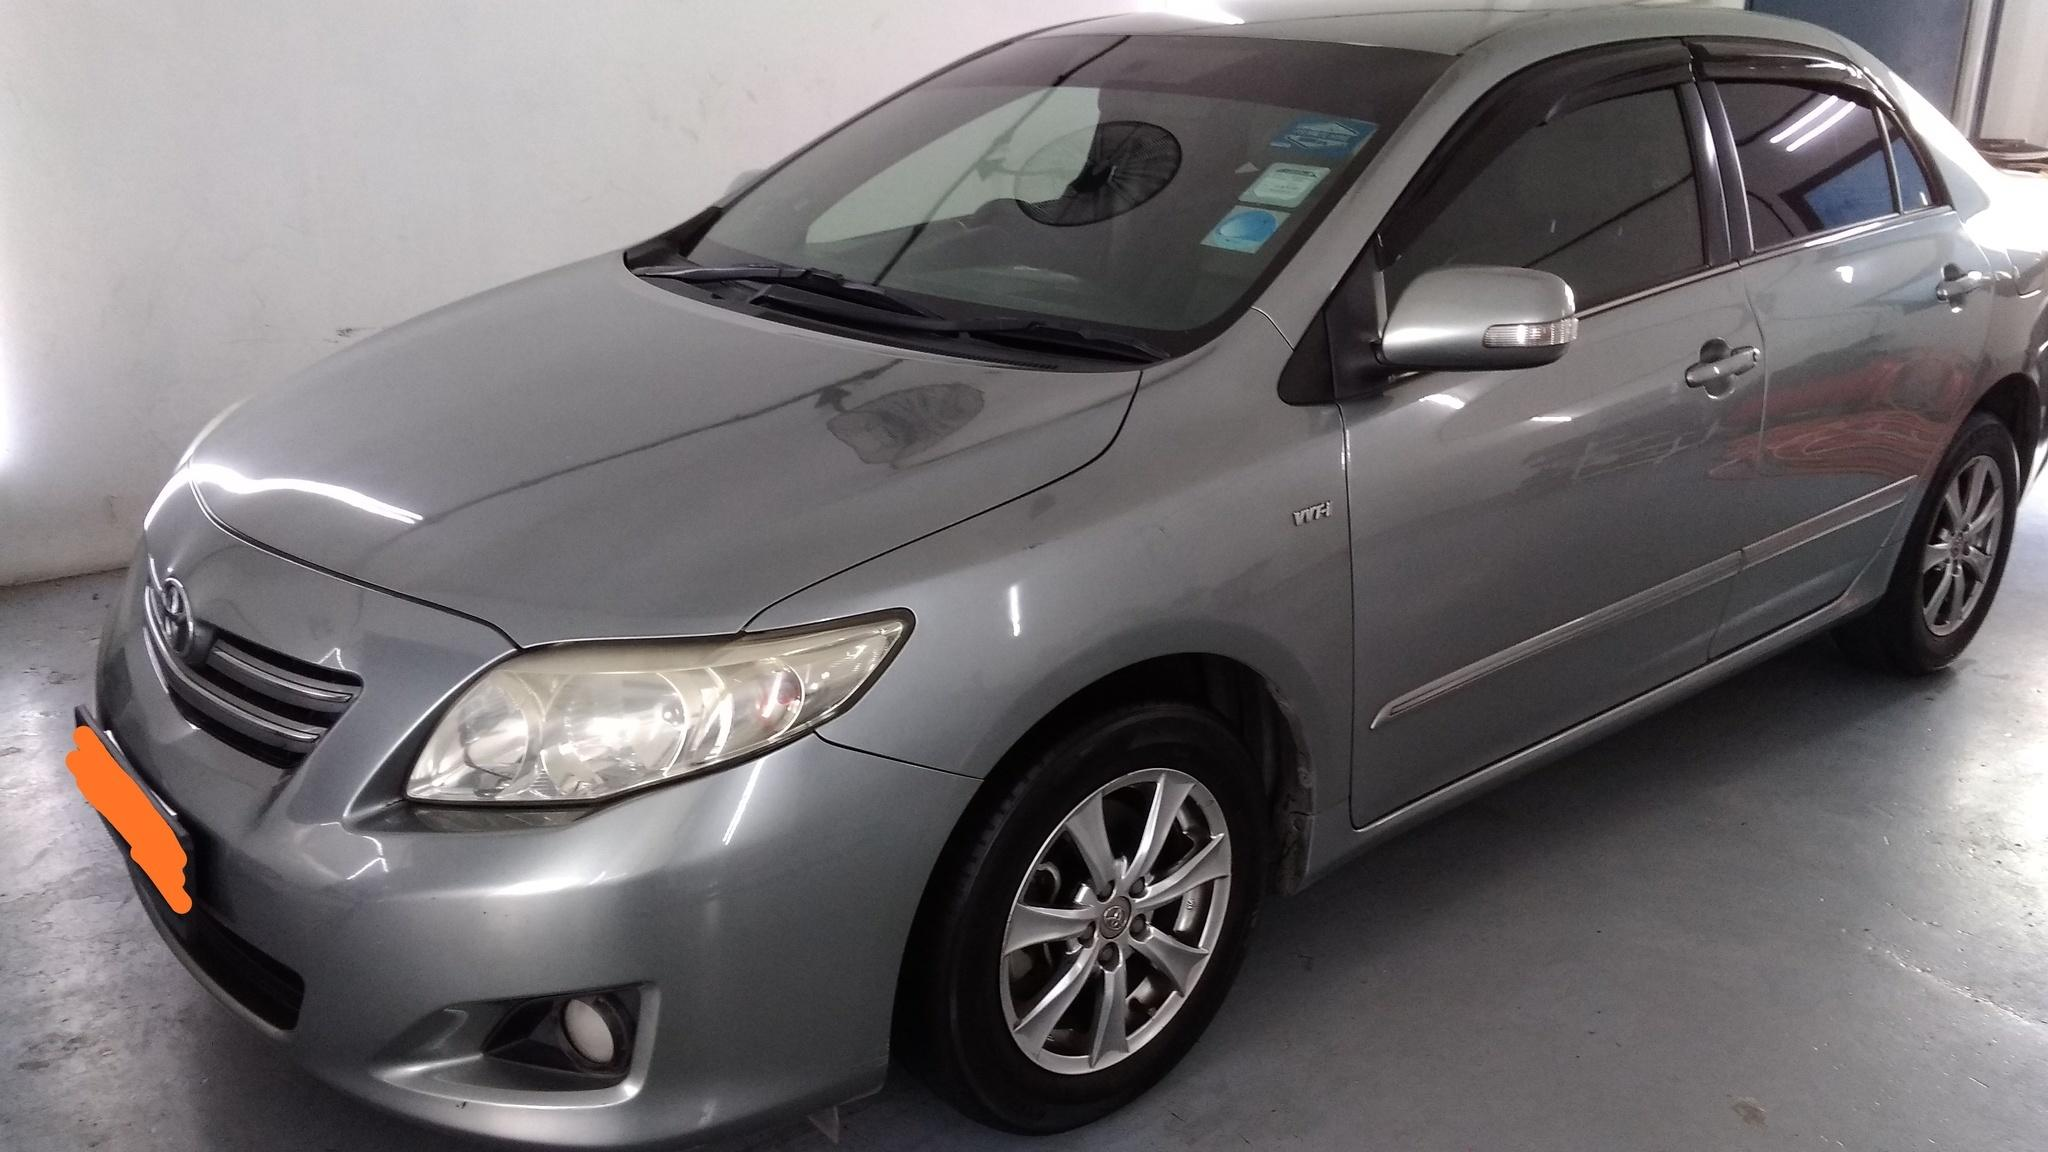 3-Month PHV Contract Toyota Altis $350/Week